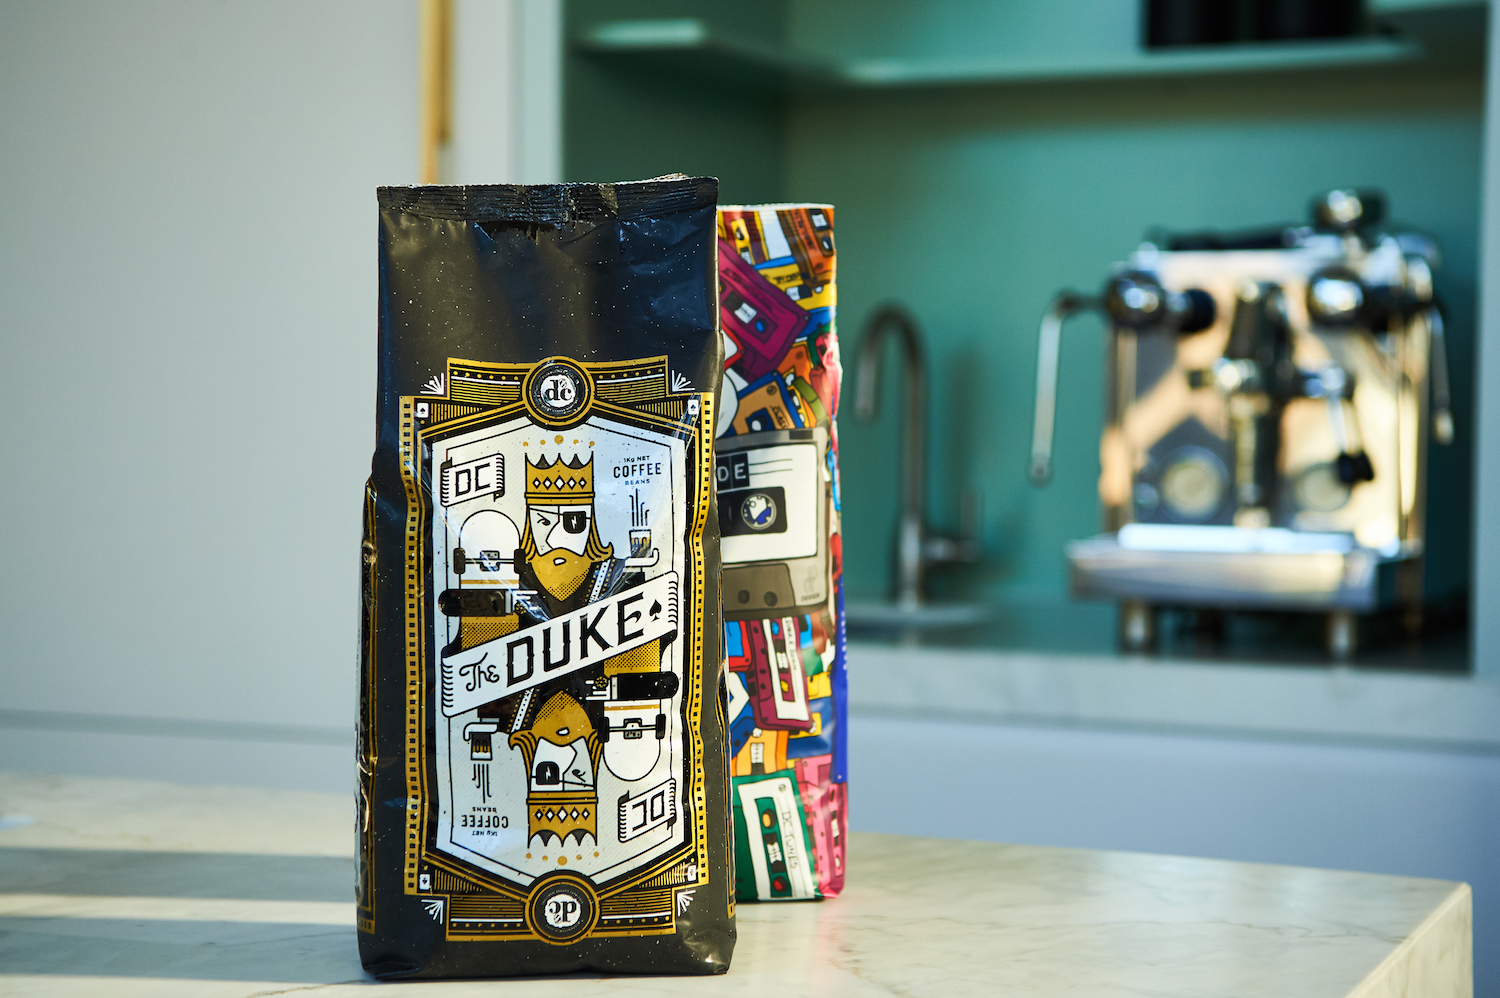 packaging, illustration, coffee design,illustrations by created by south, design and development created by south, dc coffee roasters the duke